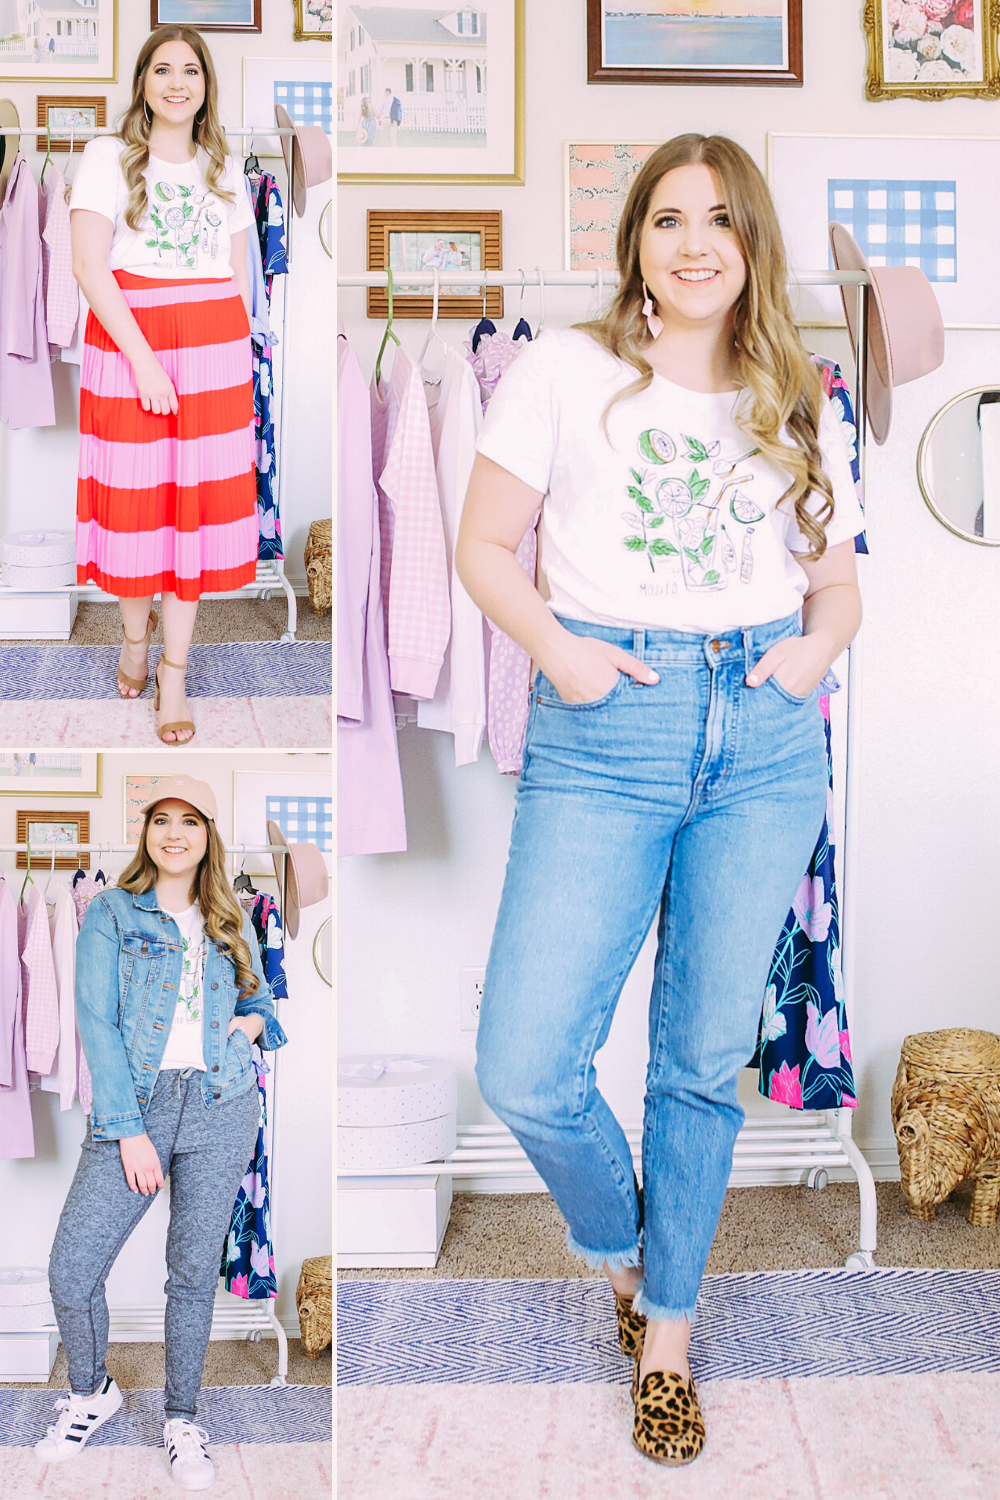 5 Ways To Style A Graphic T-Shirt